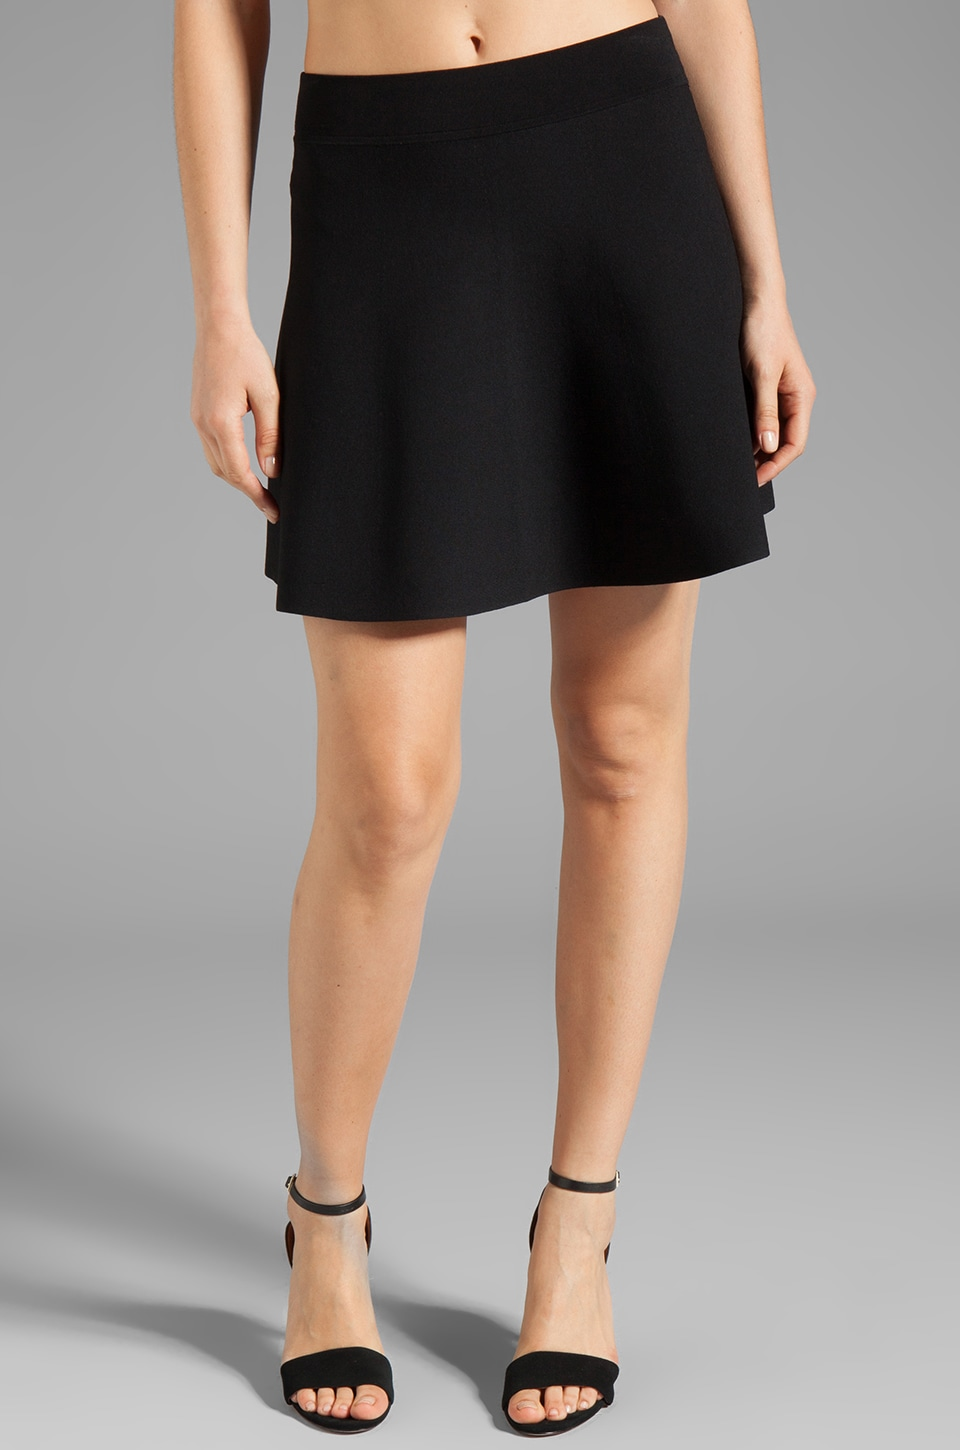 Theory Doreene Skirt in Black